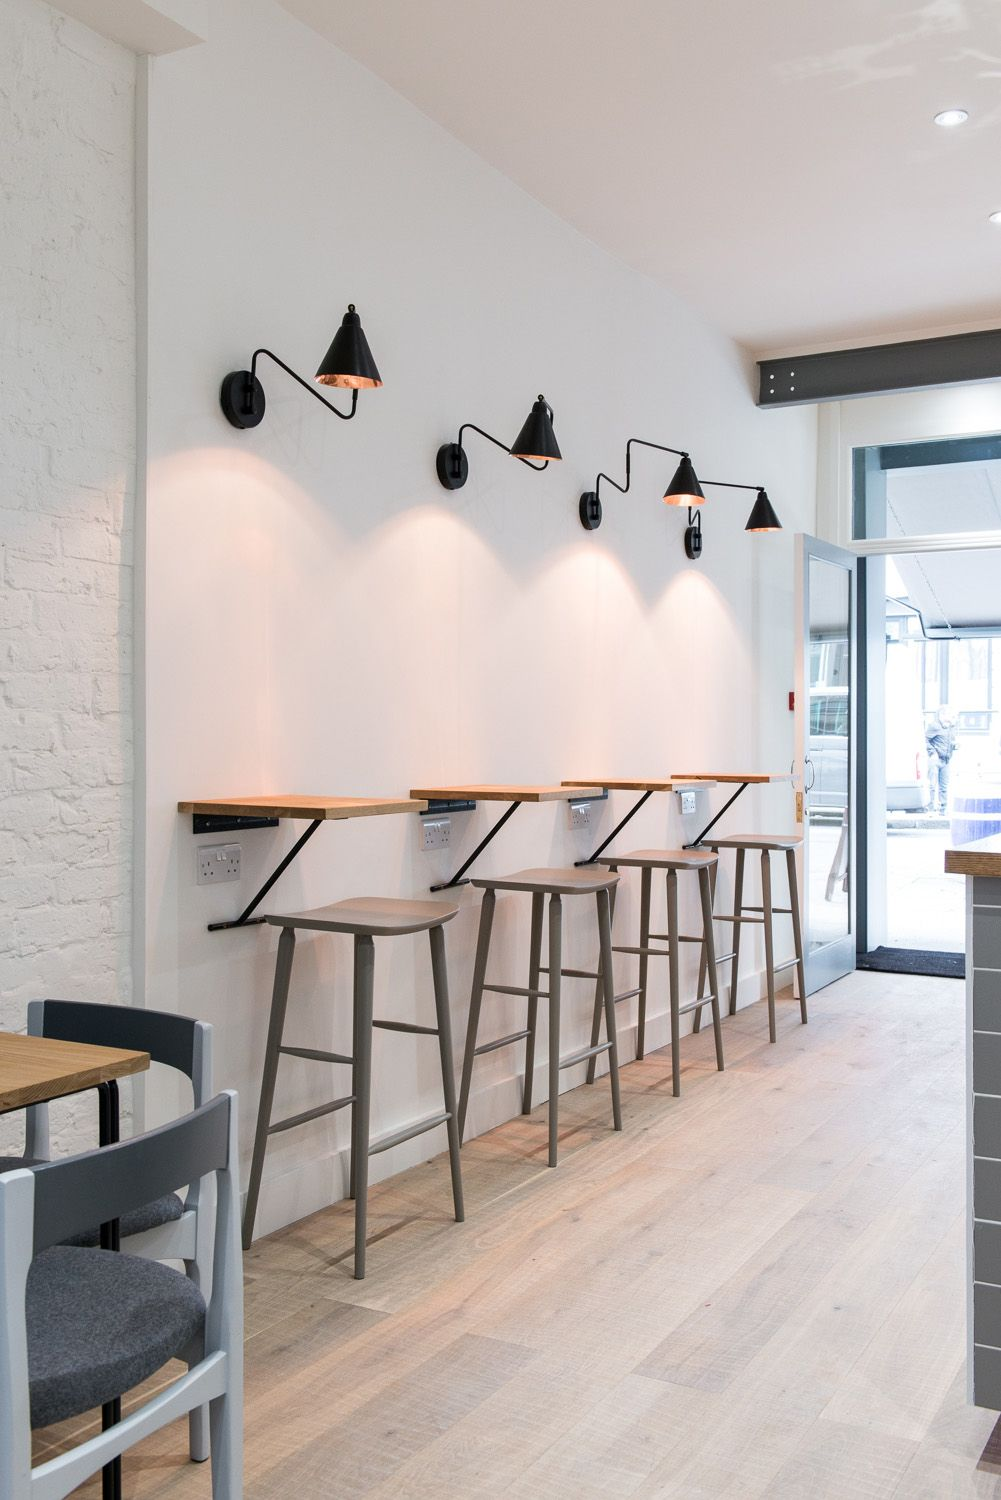 New-York wall lights from BODIE and FOU in the KIN Cafe, London. For more inspiring cafés & interior design ideas, go to www.karinecandicekong.com